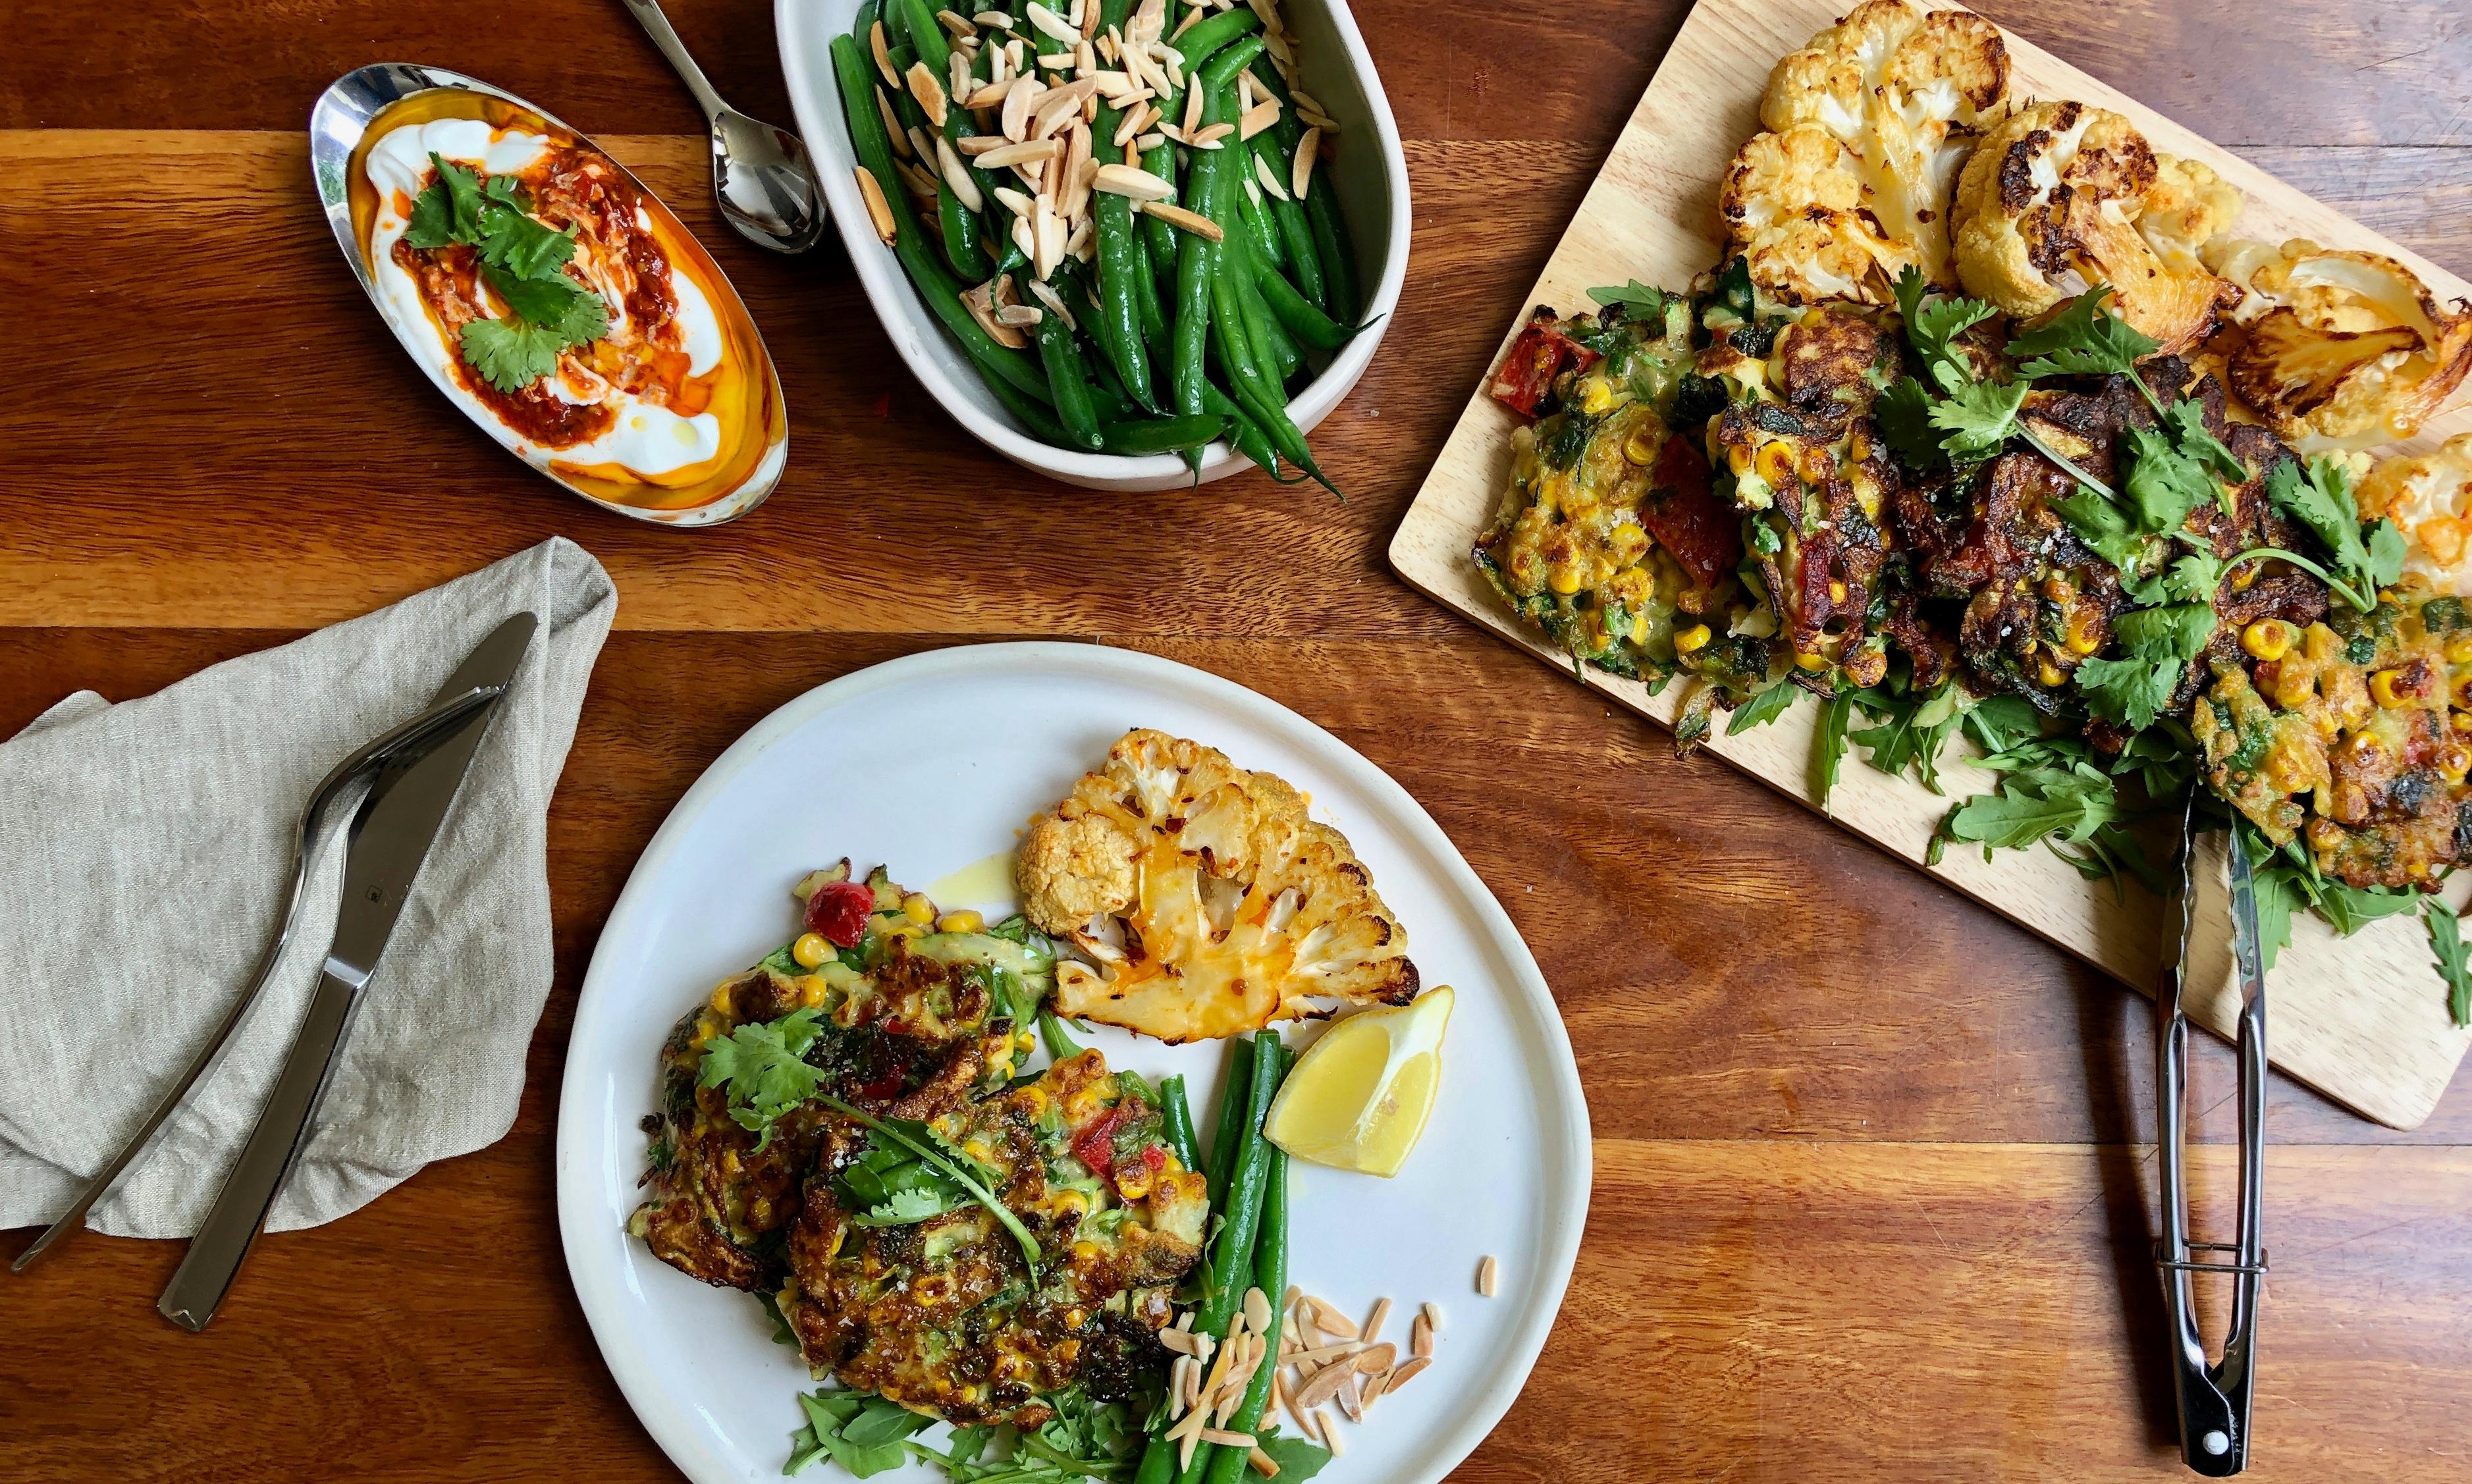 30-minute meal: corn and zucchini fritters with harissa cauliflower steak recipe